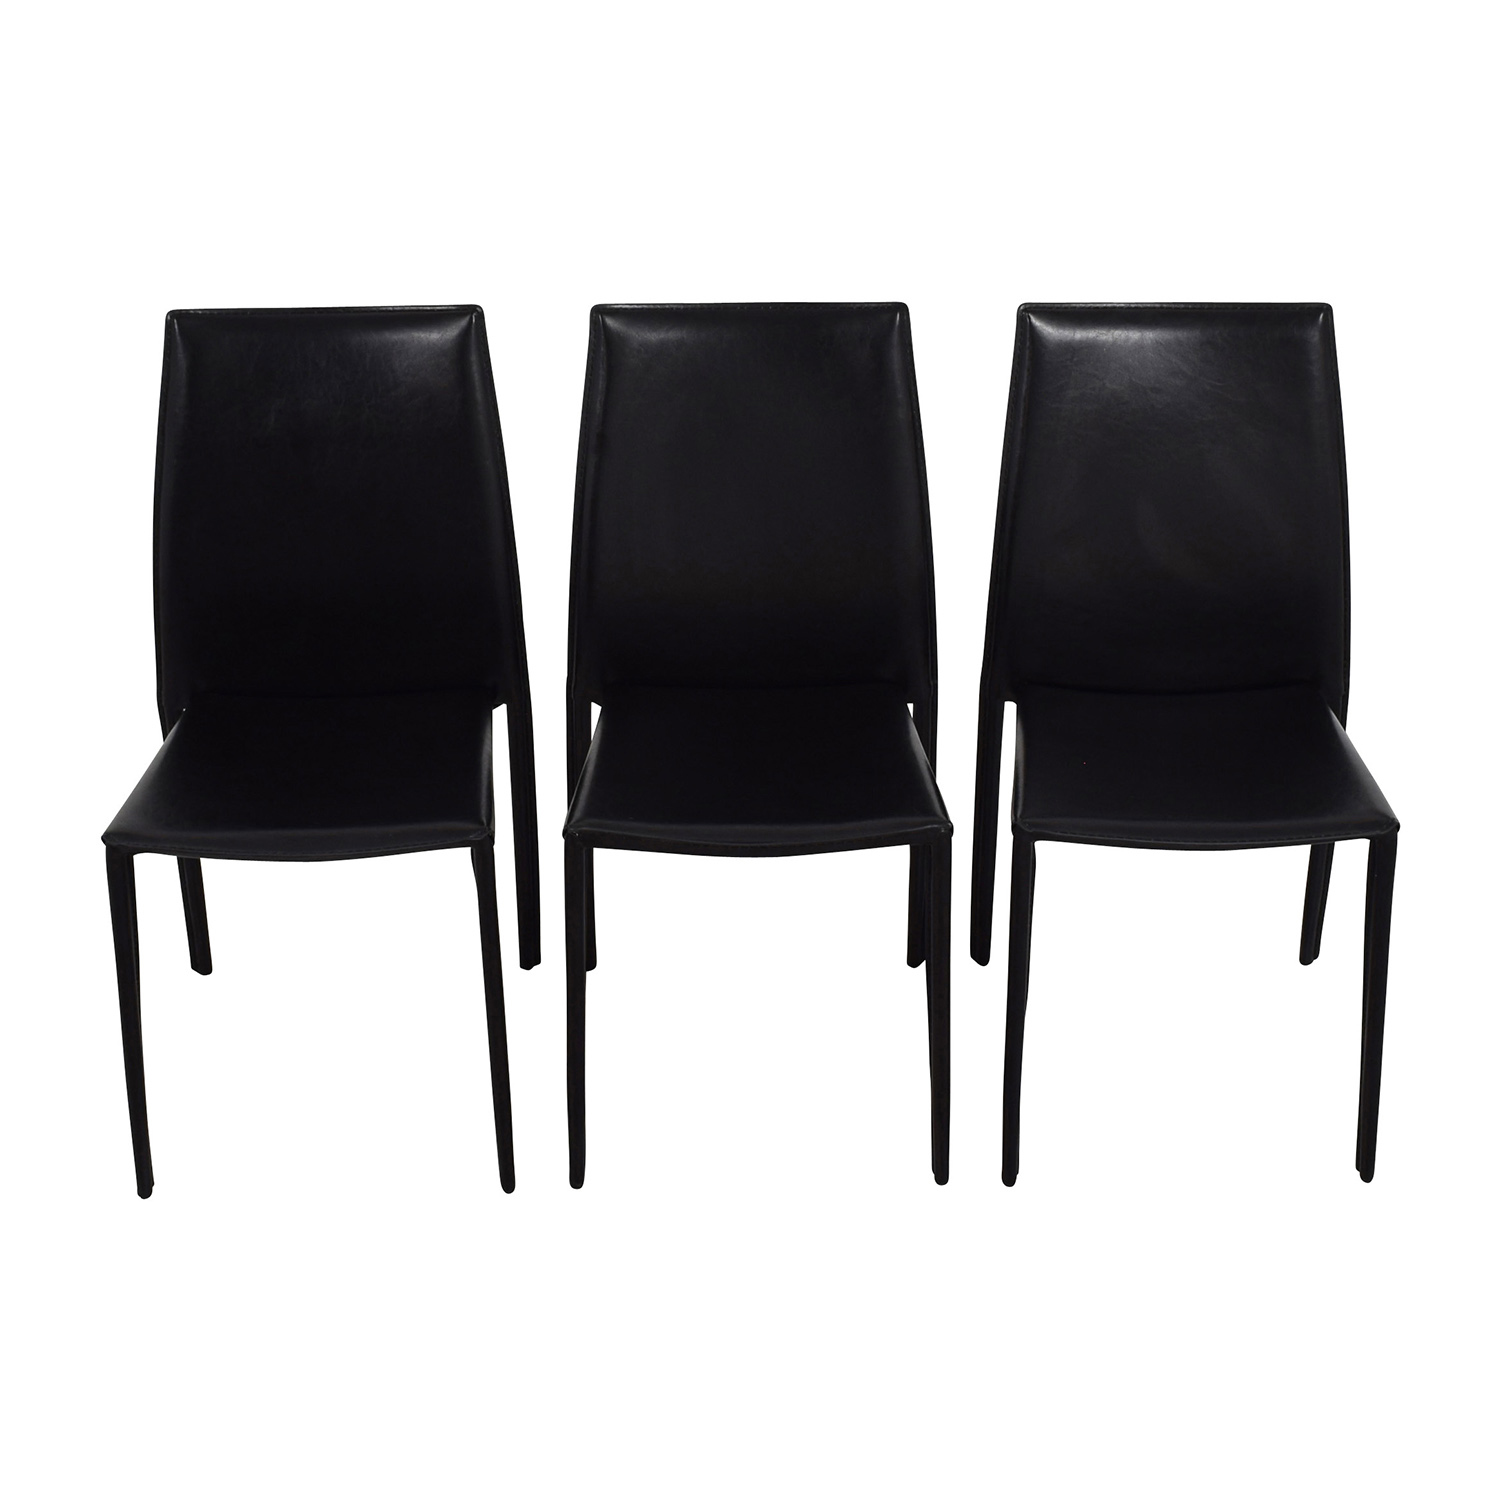 ... Buy InMod Manta Black Leather Stacking Chairs InMod Chairs ...